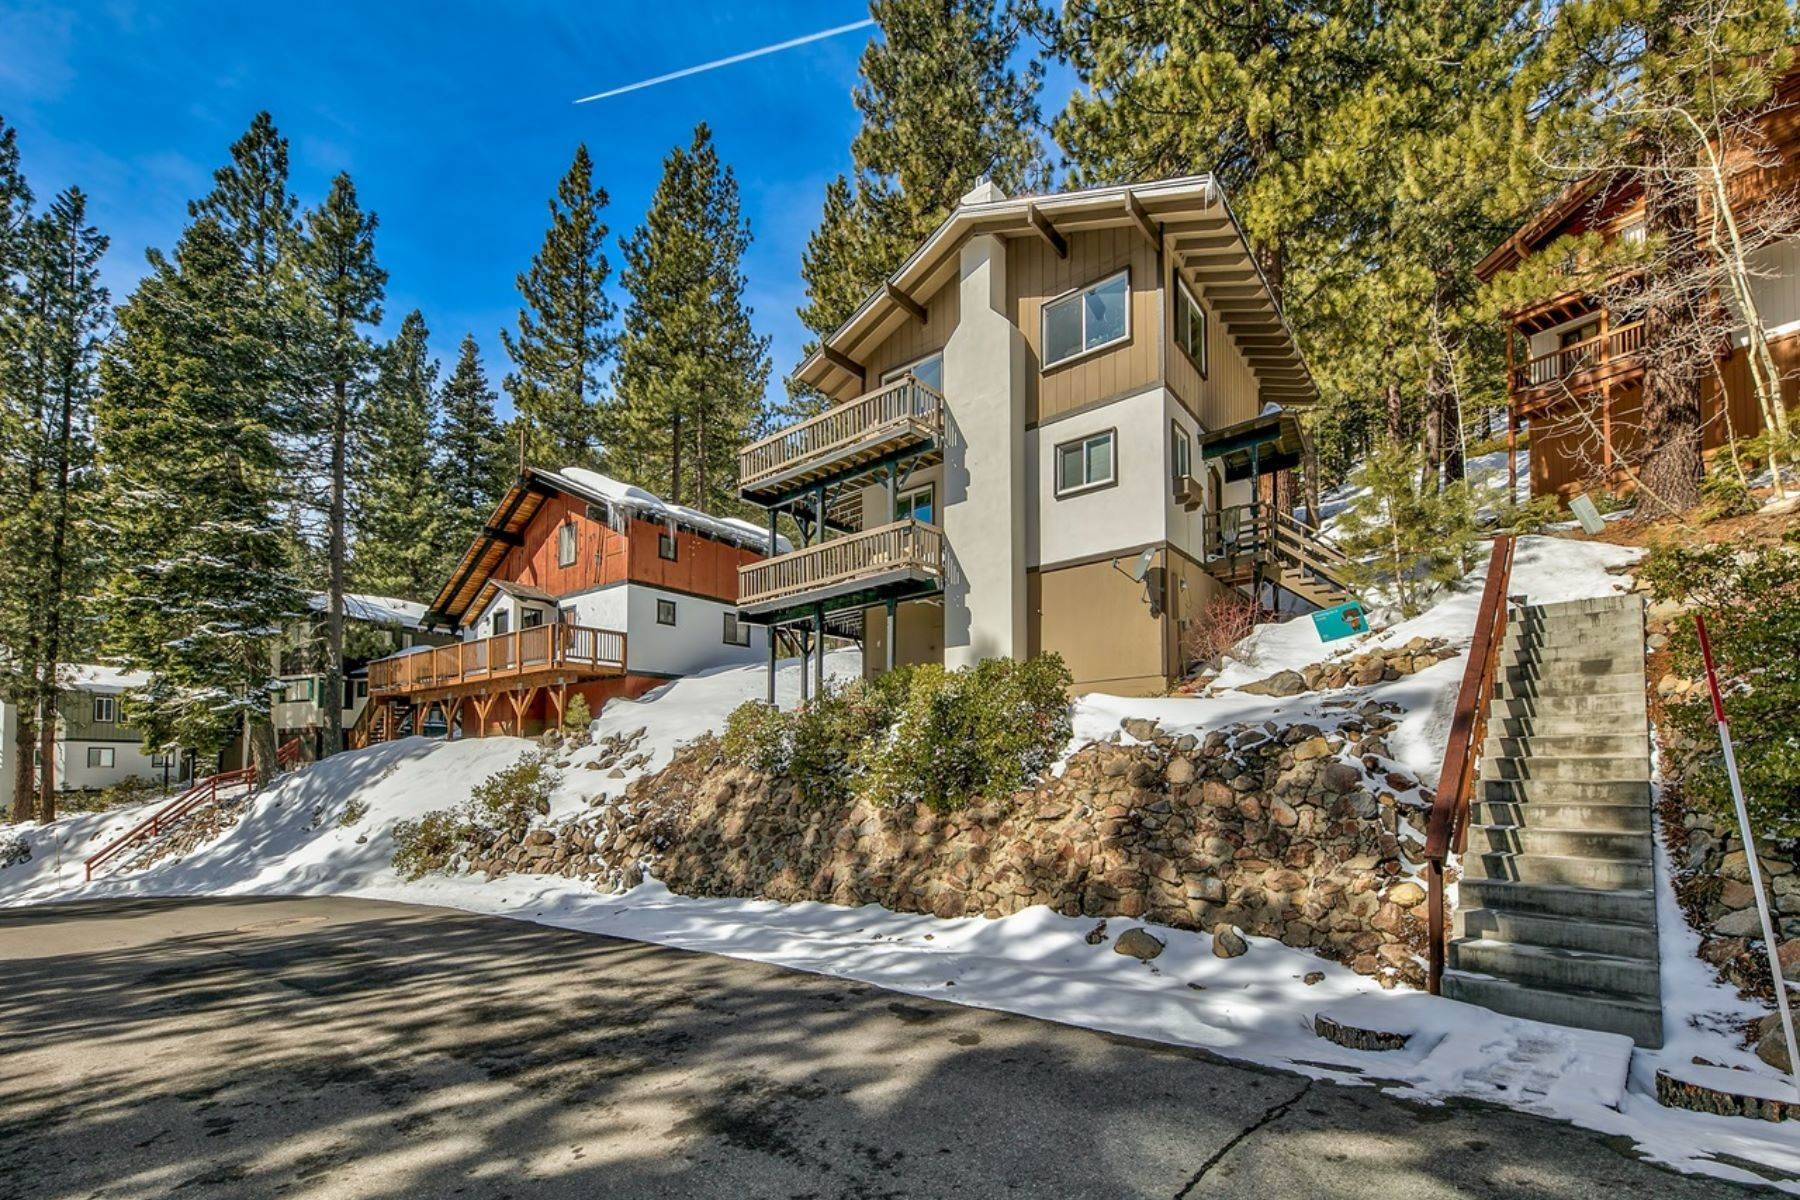 Single Family Homes for Active at Mountain Chalet Tyrolian Village 1367 Carinthia Ct Incline Village, Nevada 89451 United States